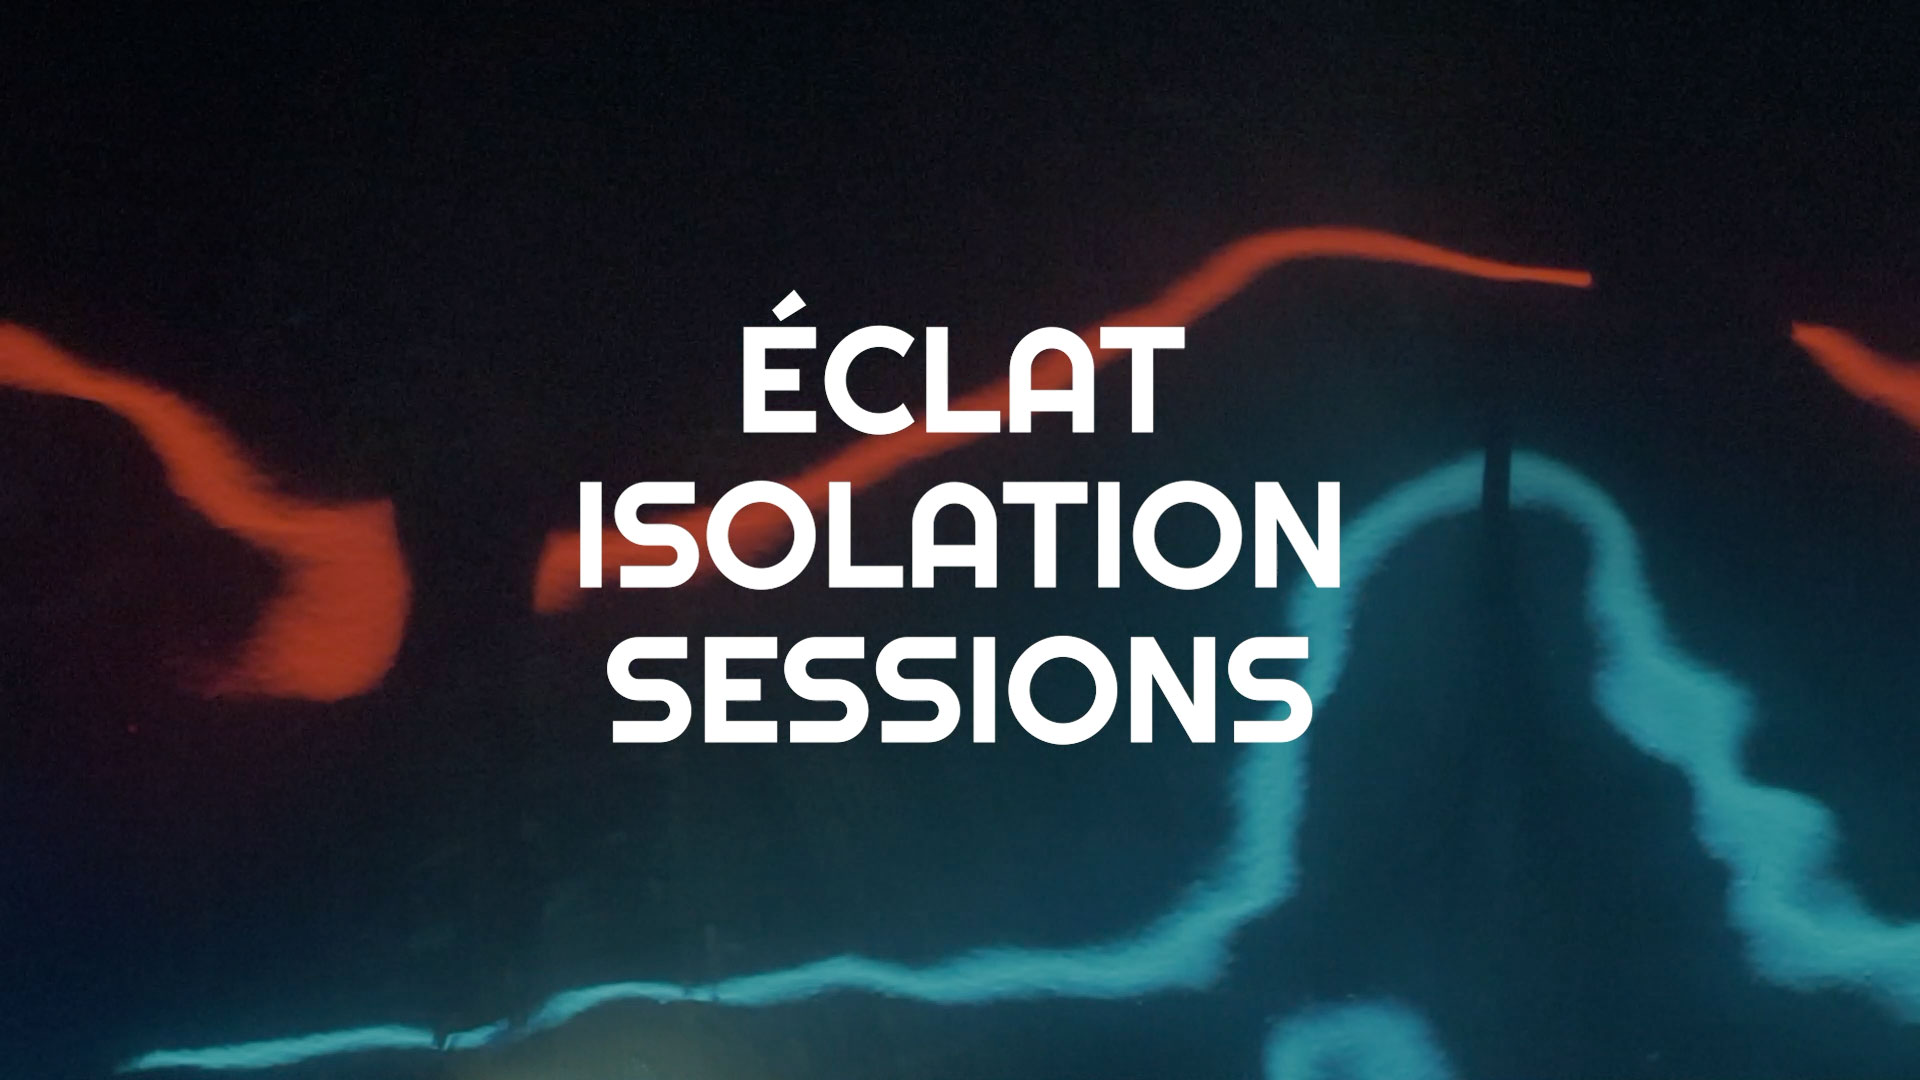 Éclat Isolation Sessions